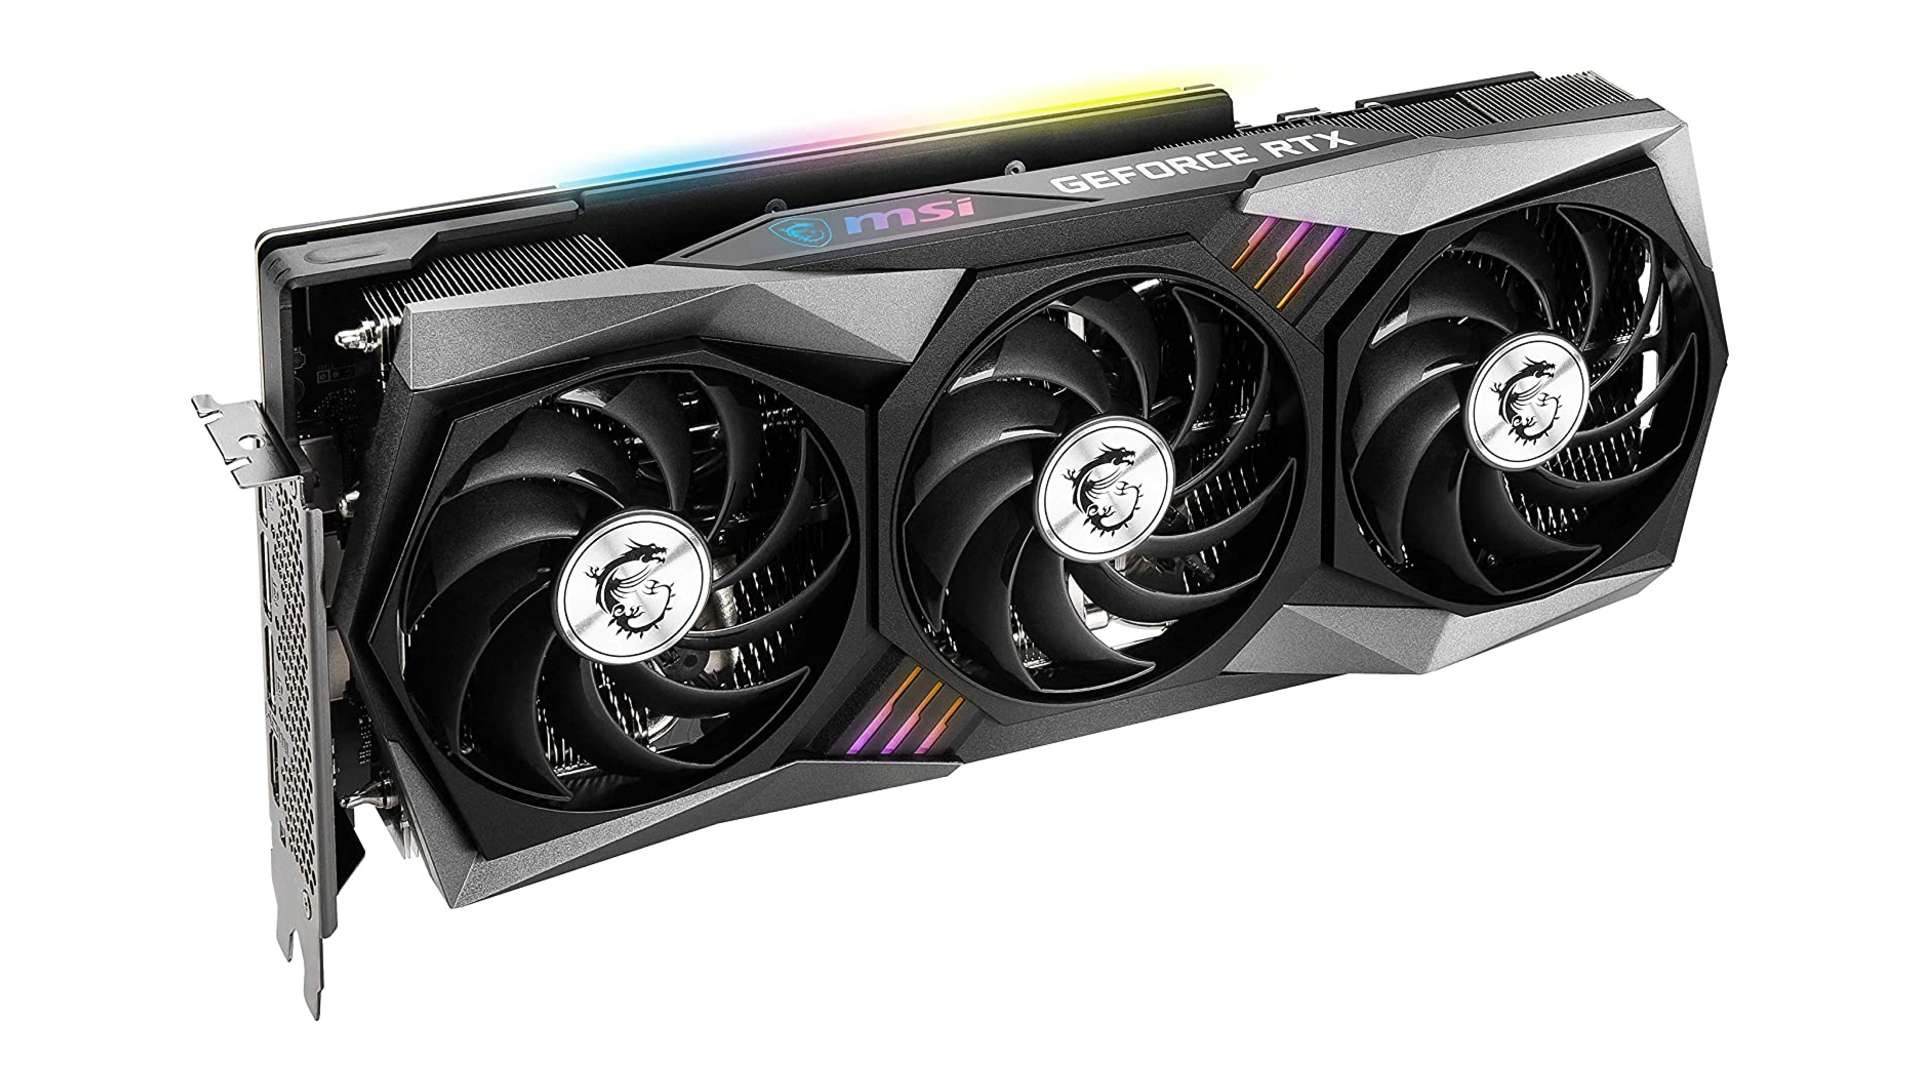 MSI warns its AMD and Nvidia graphics cards will see a price rise